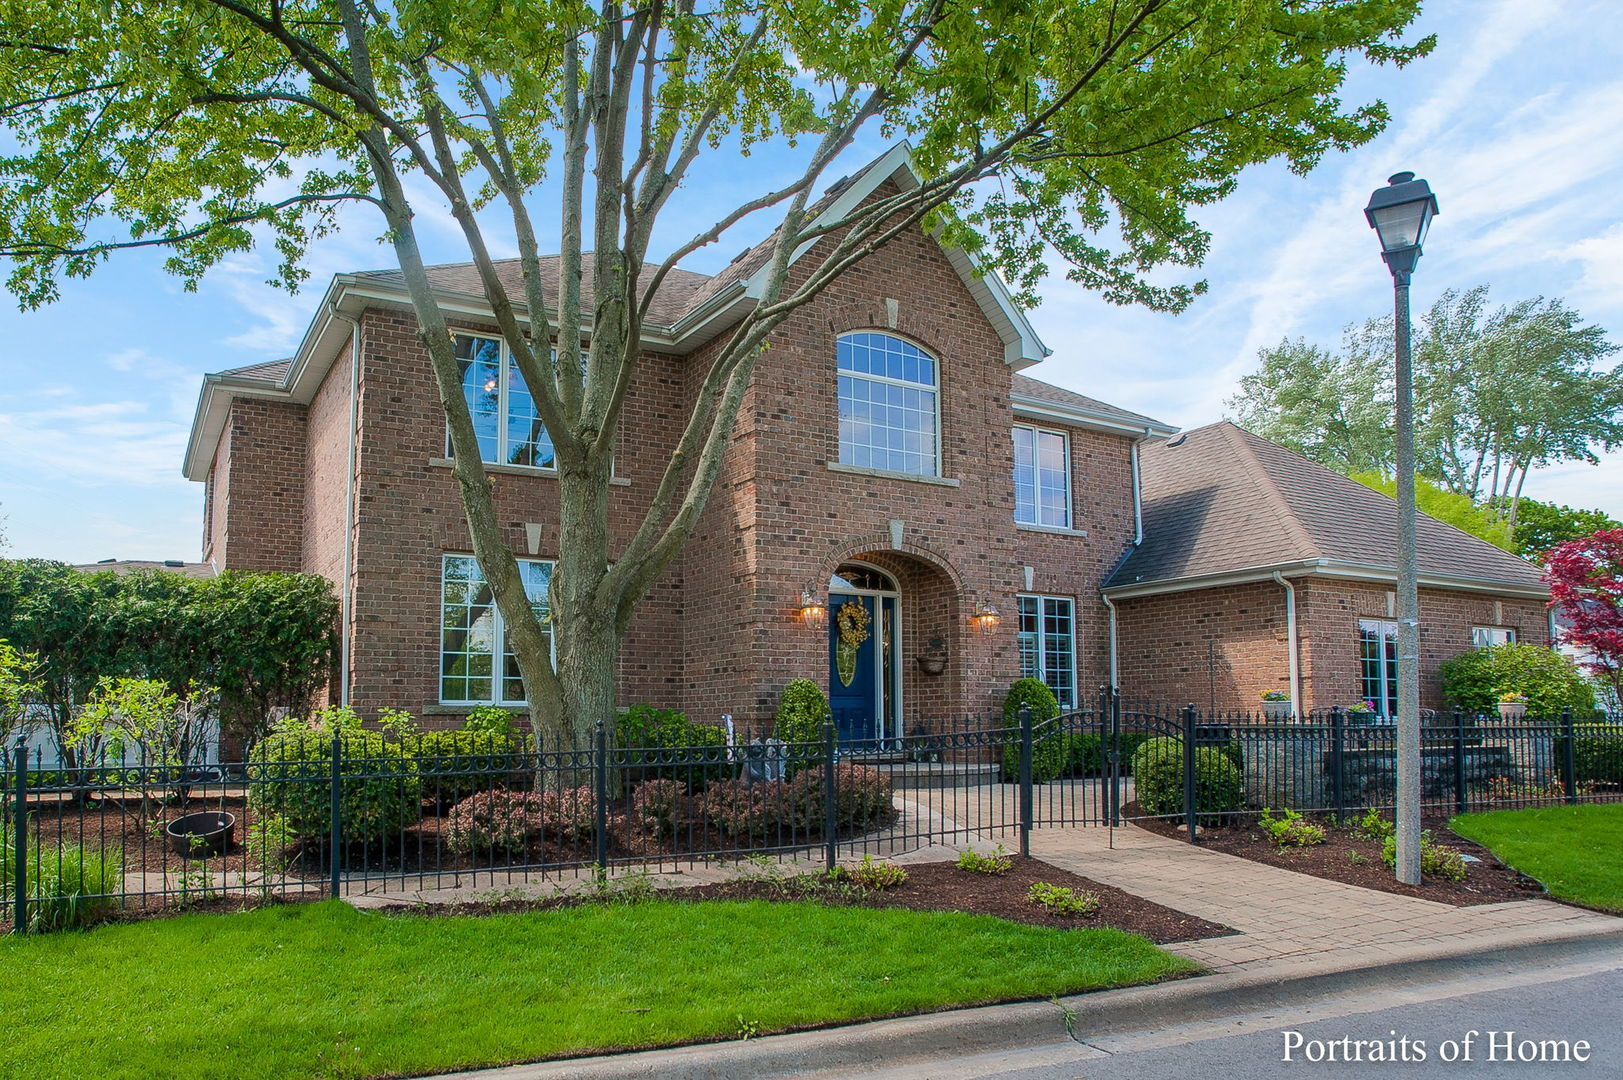 Walk right into your forever home. This beautifully kept home leaves nothing to be desired. Walk into a bright and open entry way flanked by a formal living and formal dining room. The large kitchen with eat in area is open to the living room. Connected to the living room is a 3 season room with hot tub included. This home is perfect for entertaining. Upstairs features 4 bedrooms and a master suite is something to dream over. The basement living room features a hand crafted wet bar. The pool table and the foosball table will be included as well. The fifth bedroom is located just off the basement living room.